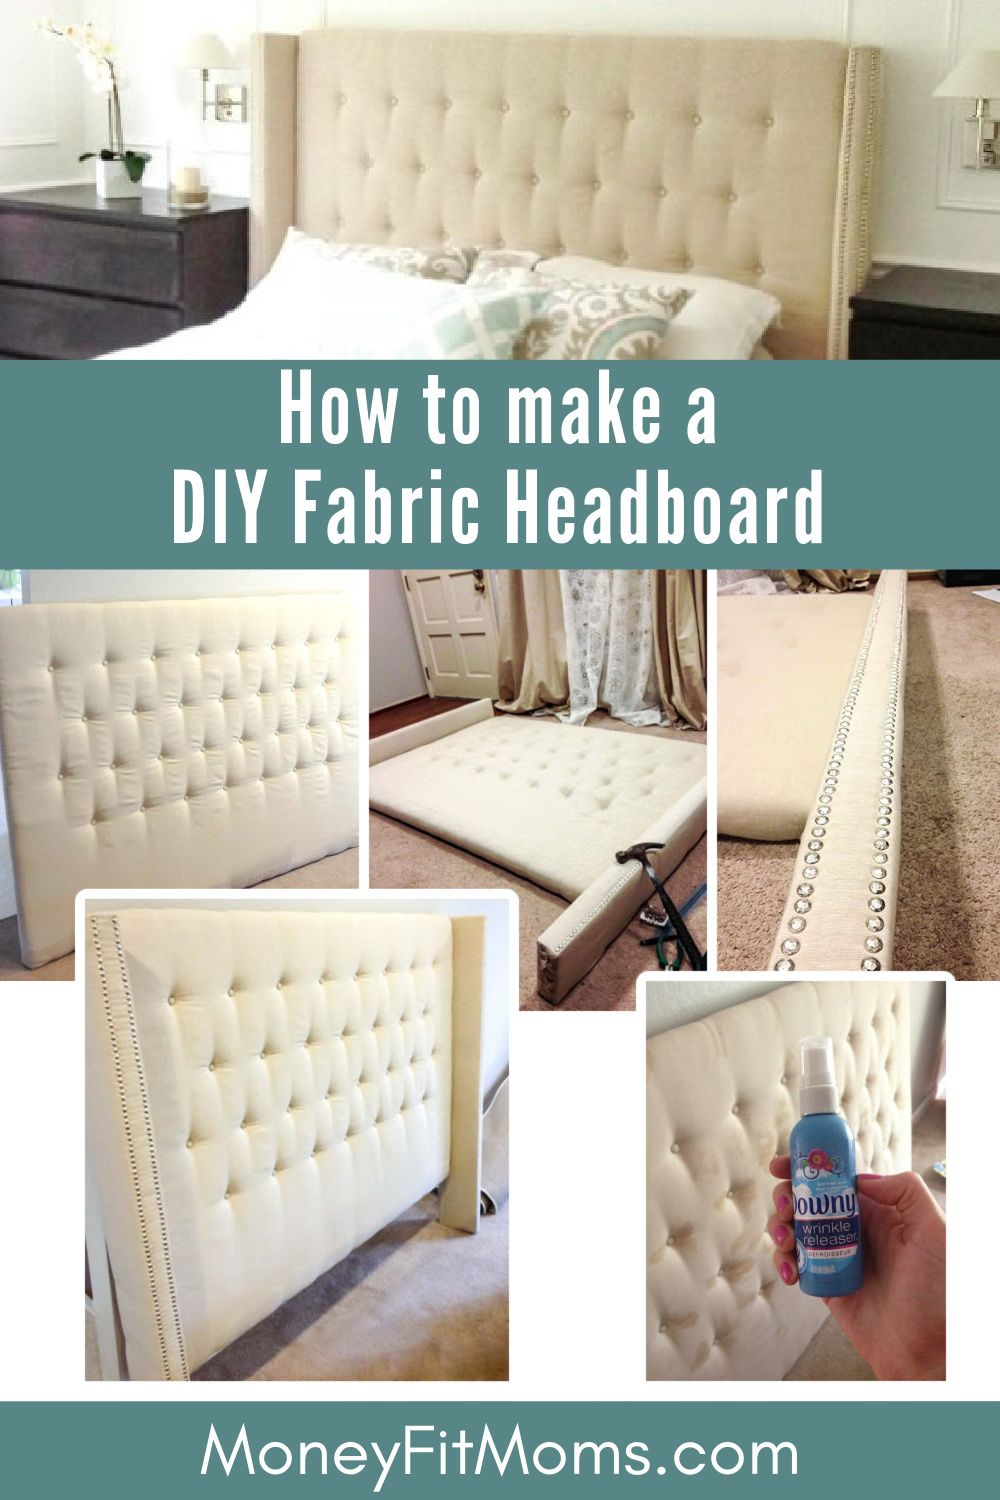 How To Make A Diy Fabric Headboard With Buttons And Nailhead Arms In 2021 Diy Headboard Upholstered Diy Bed Headboard Upholstered Headboard